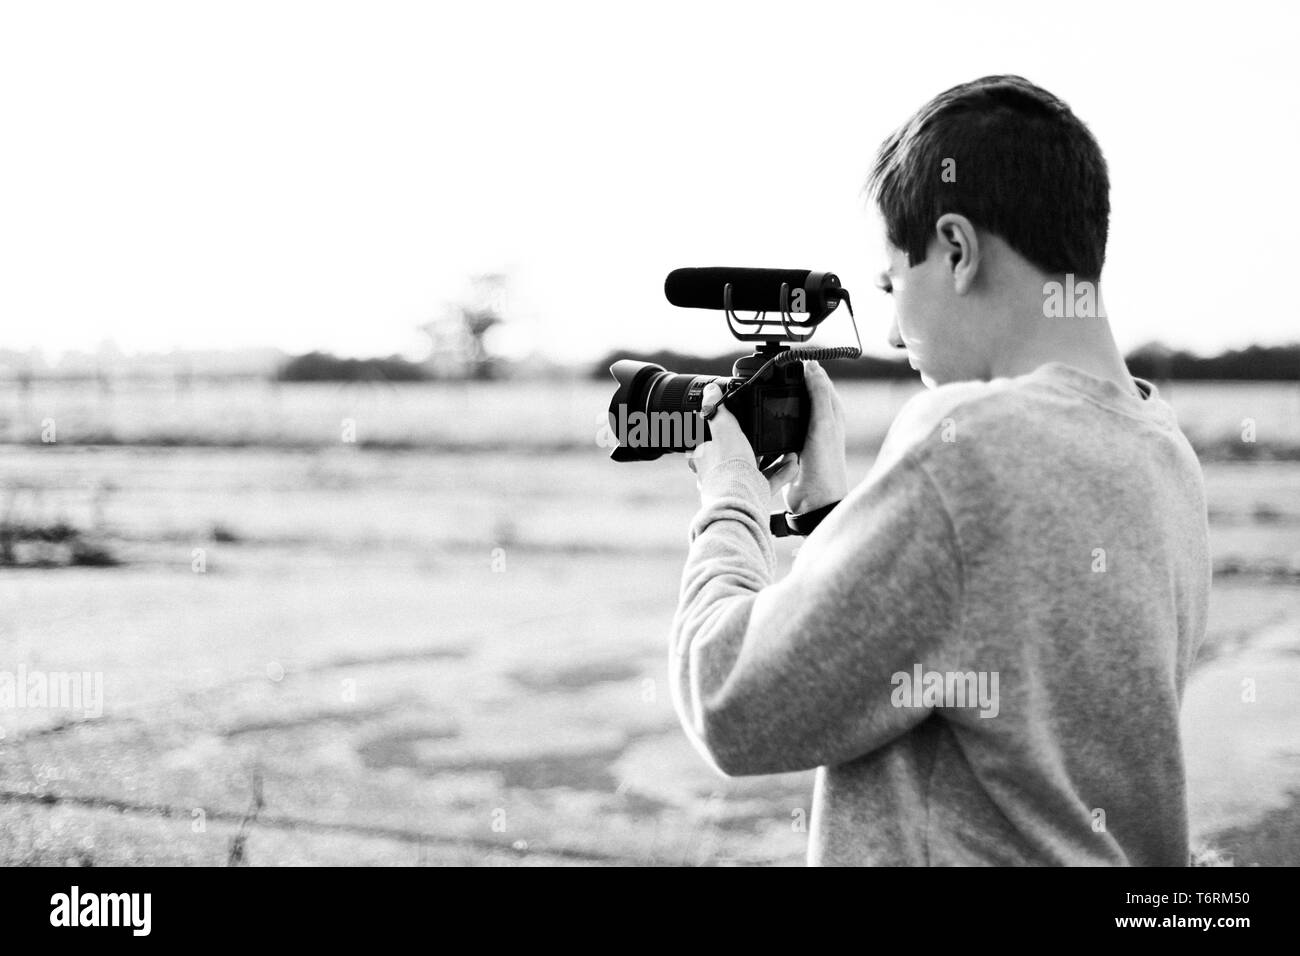 Young male videographer studying and using mirrorless camera with microphone attachment to create a video.  Sunset with glow highlights the contrast. - Stock Image